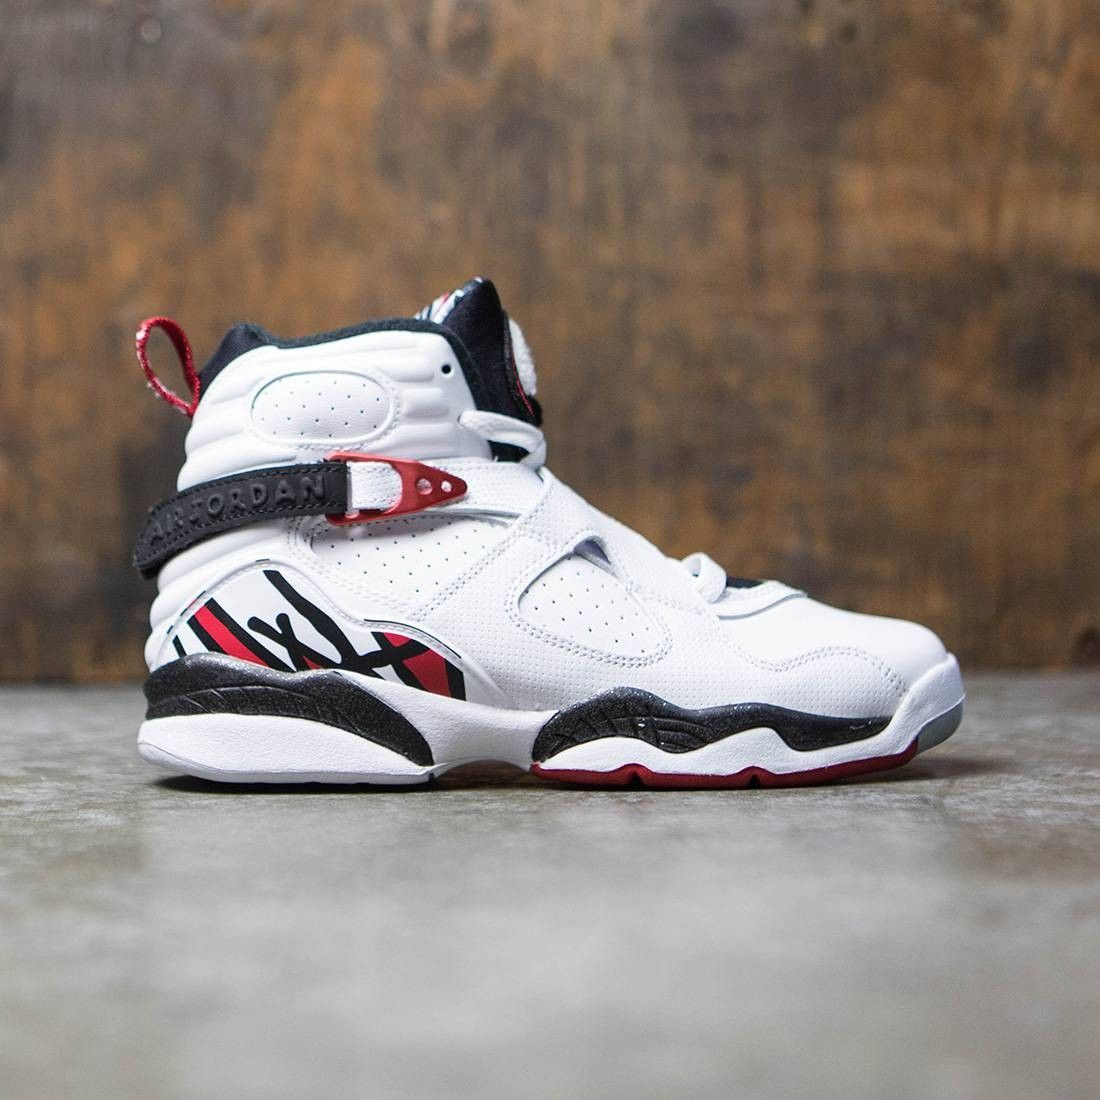 33a2c9a2920bbe Jordan Big Kids AIR JORDAN 8 RETRO (GS) (white   gym red-black-wolf grey)